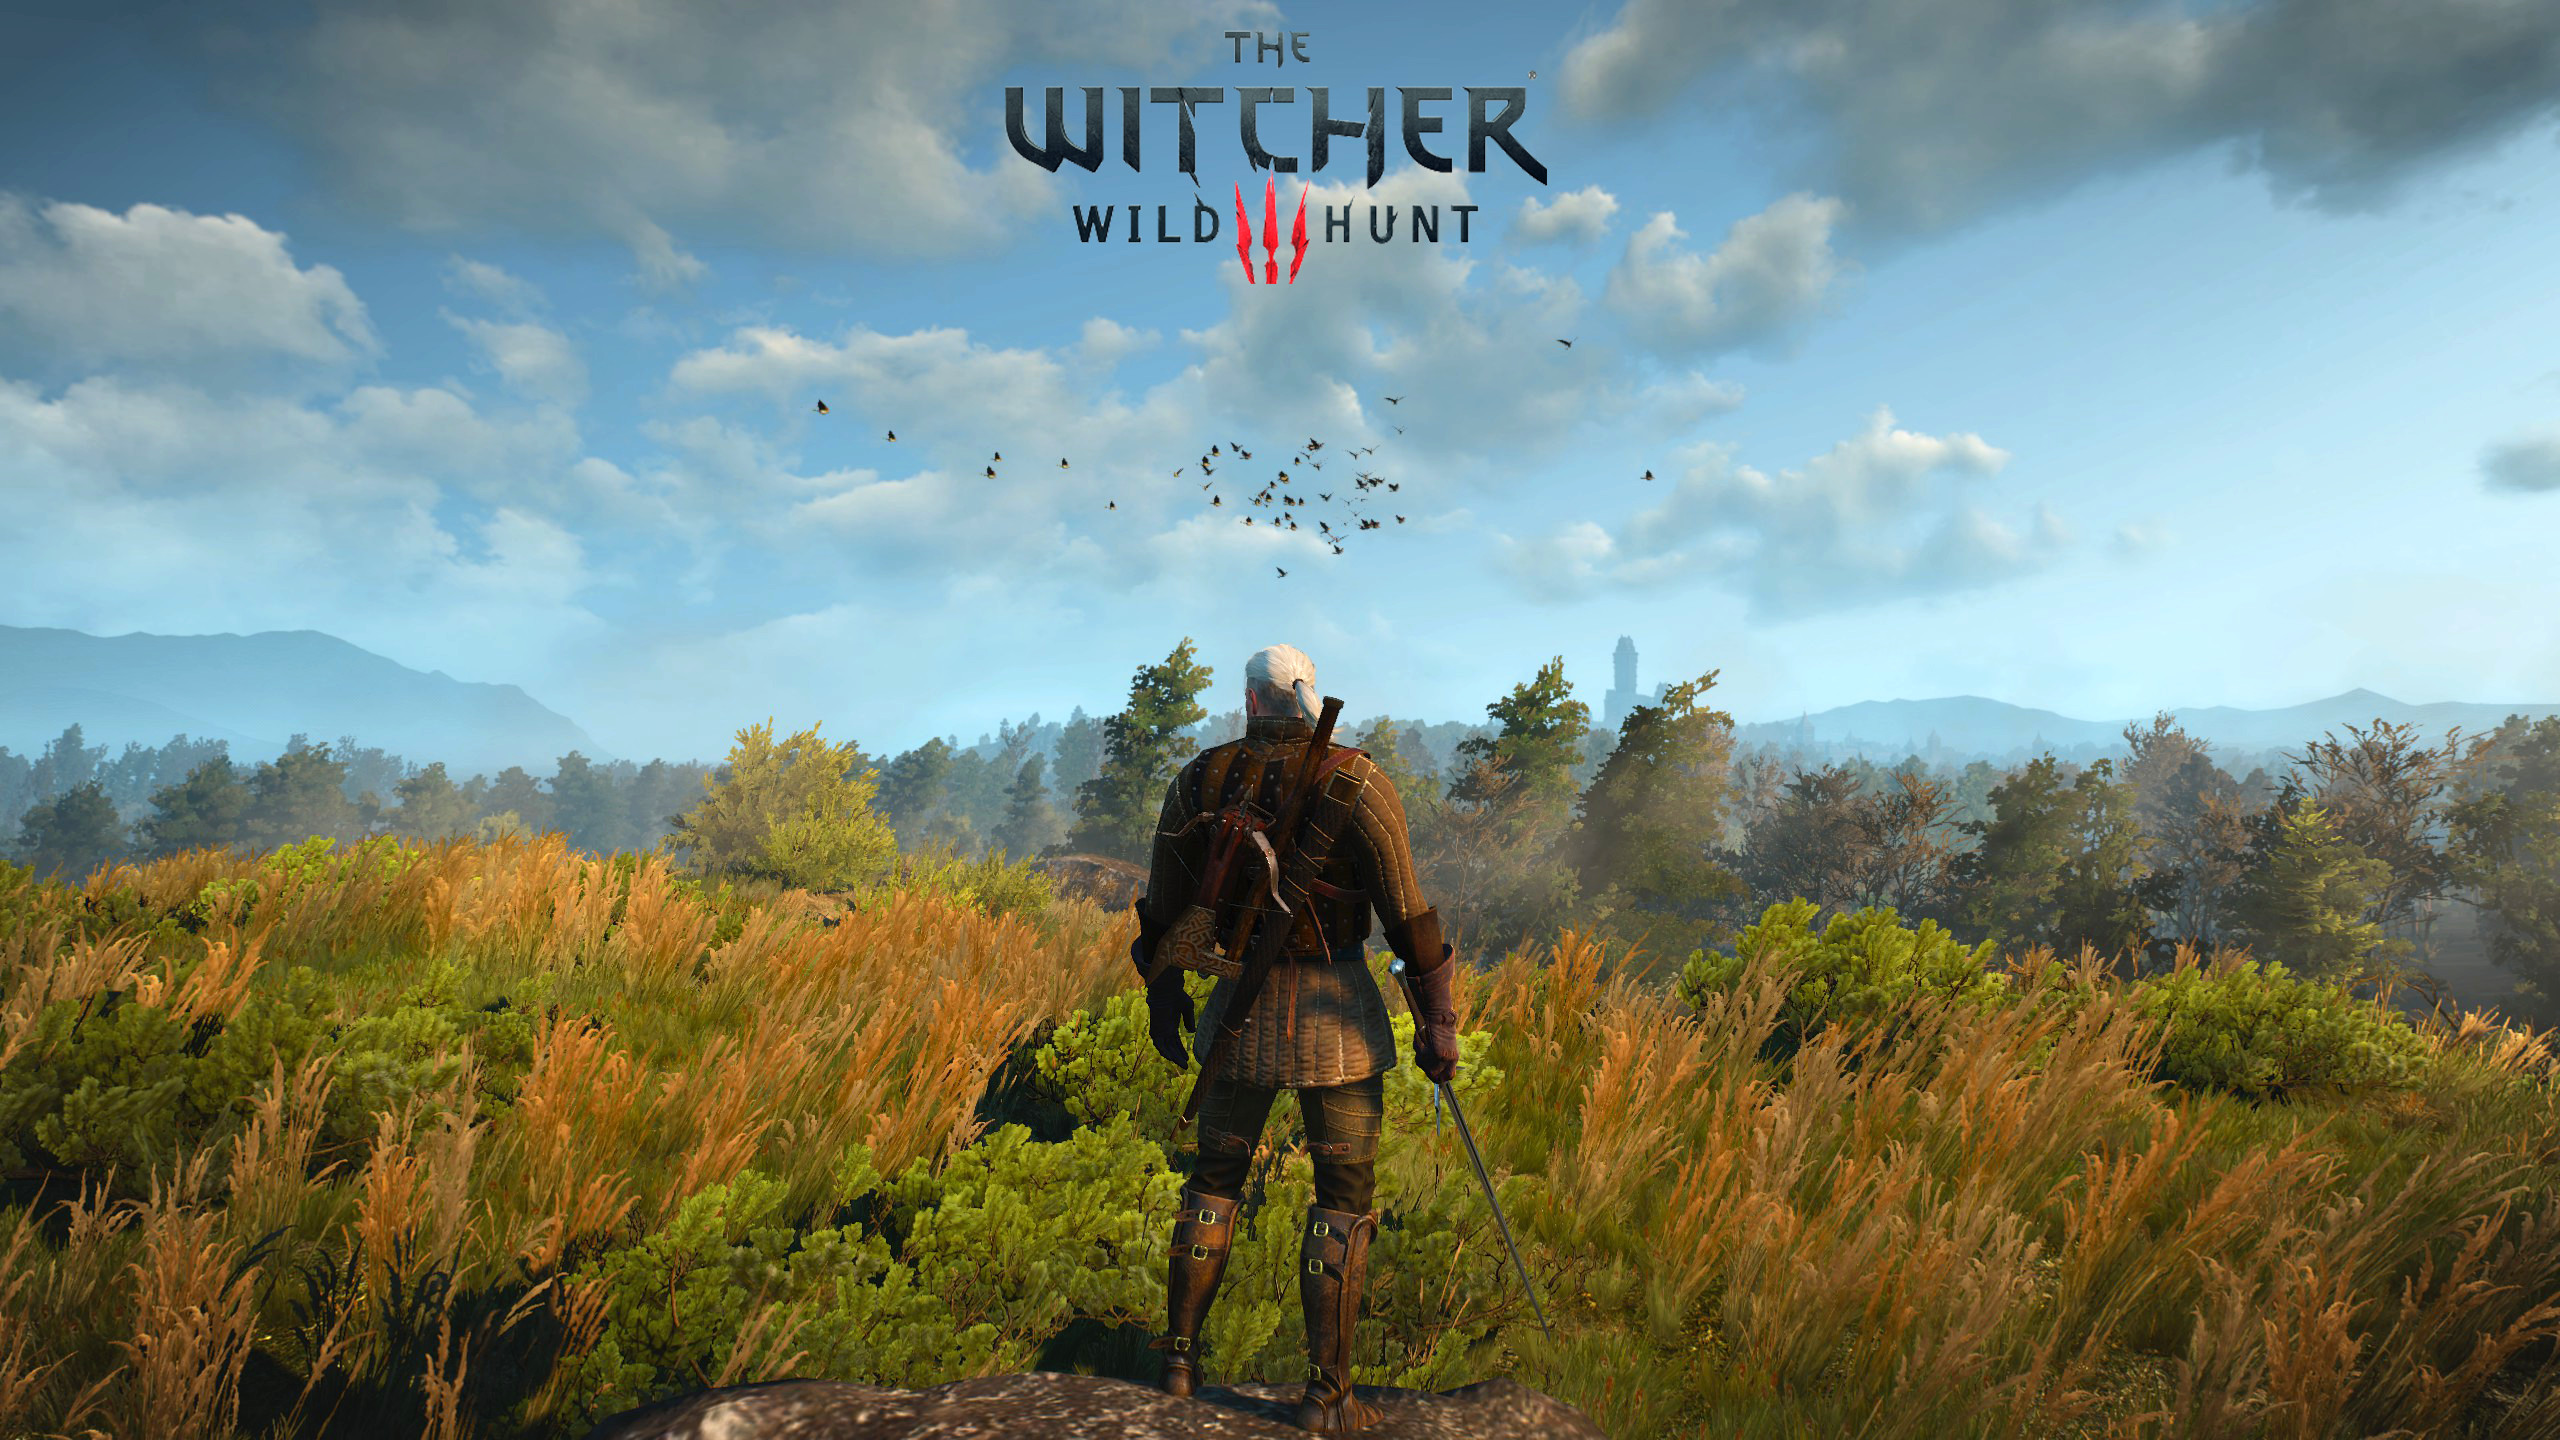 Created 4 Minimal Witcher 3 Wallpapers [1440p] 1080p in Comments : witcher